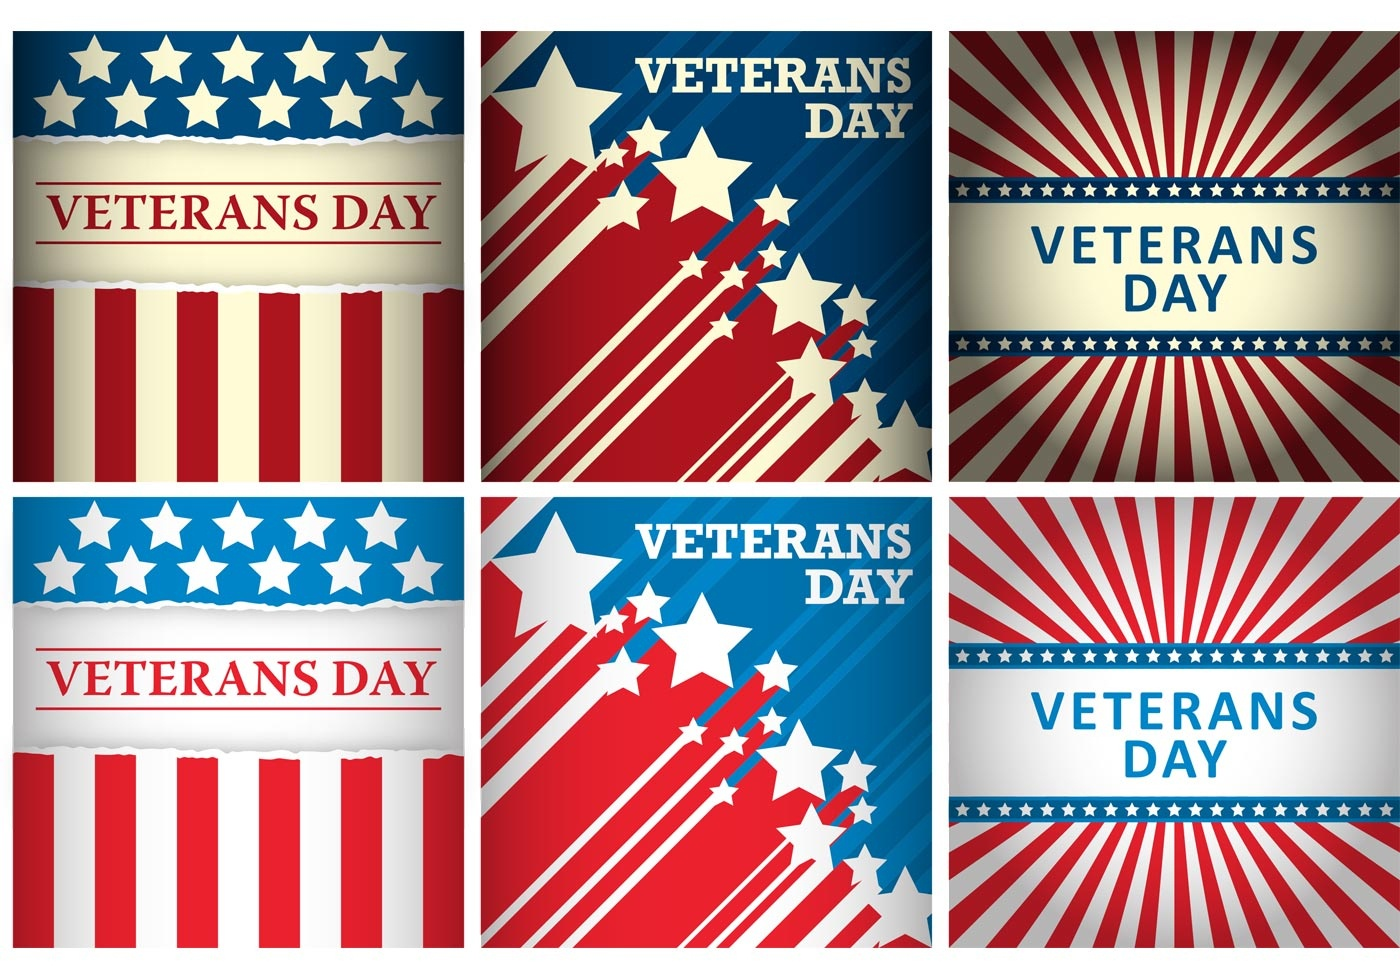 Free Printable Veterans Day Cards (27) Veterans Day Free Printable - Veterans Day Free Printable Cards